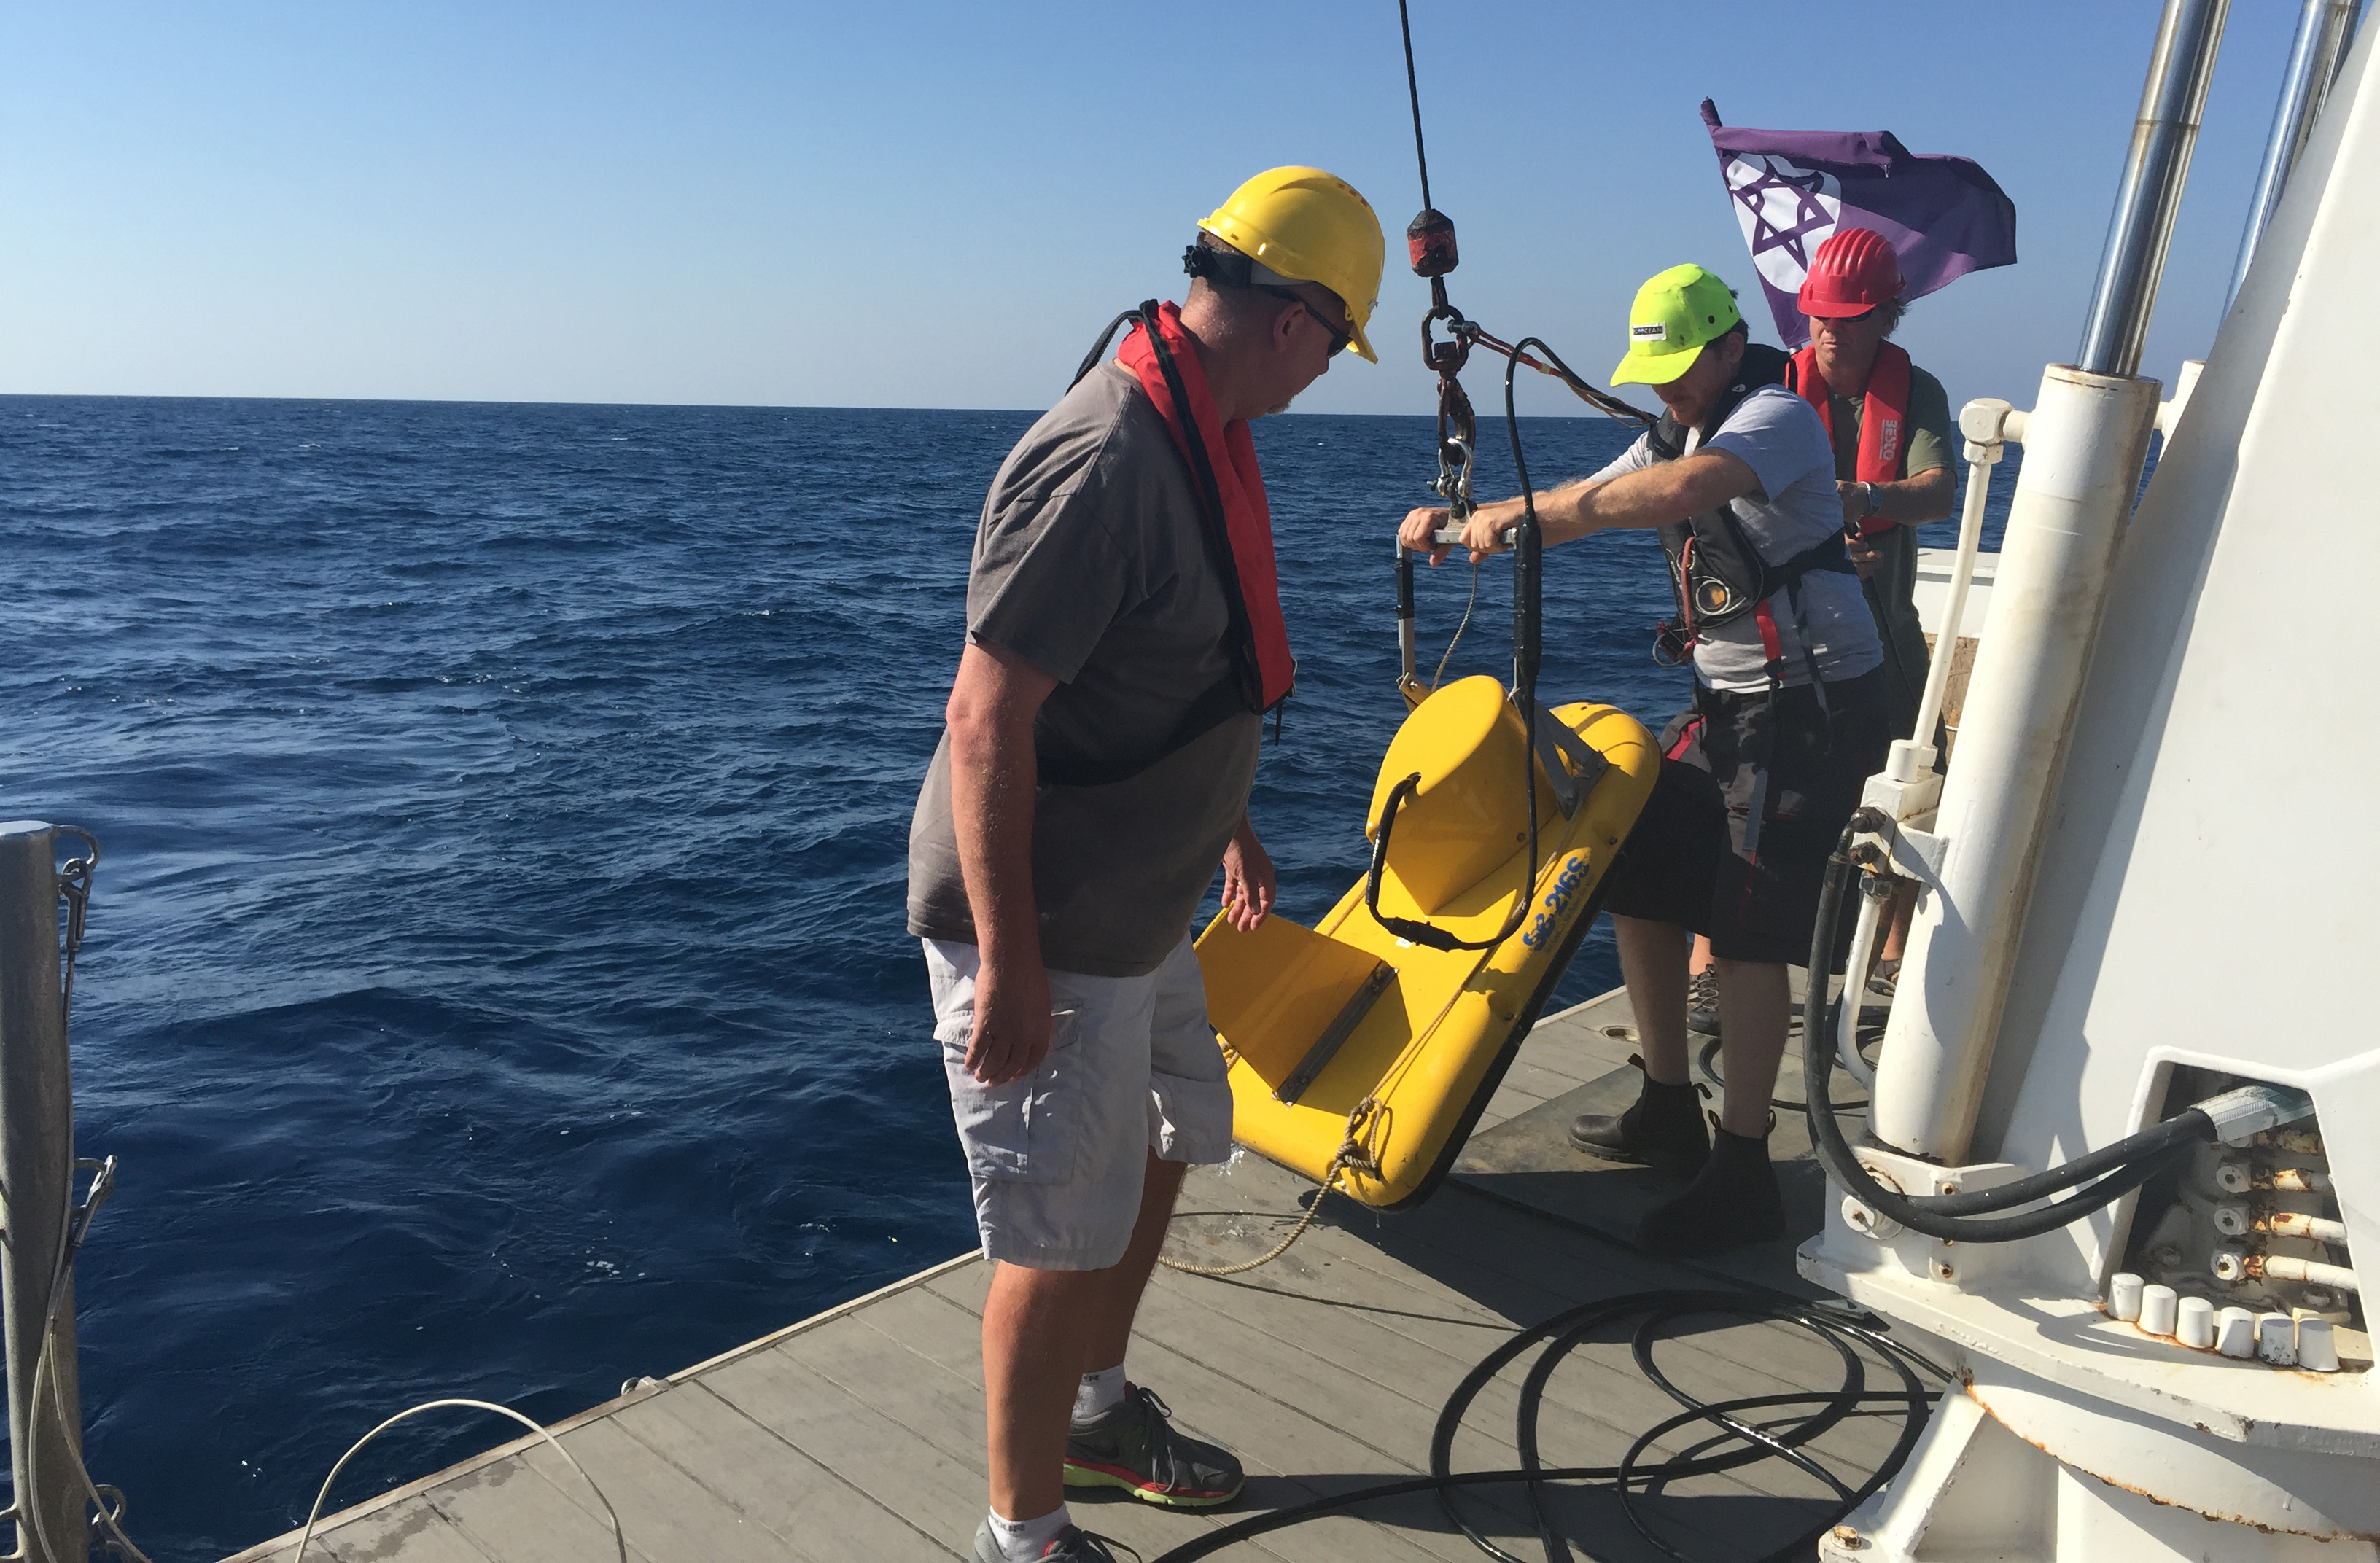 Scientists deploy scientific equipment in the Mediterranean Ocean